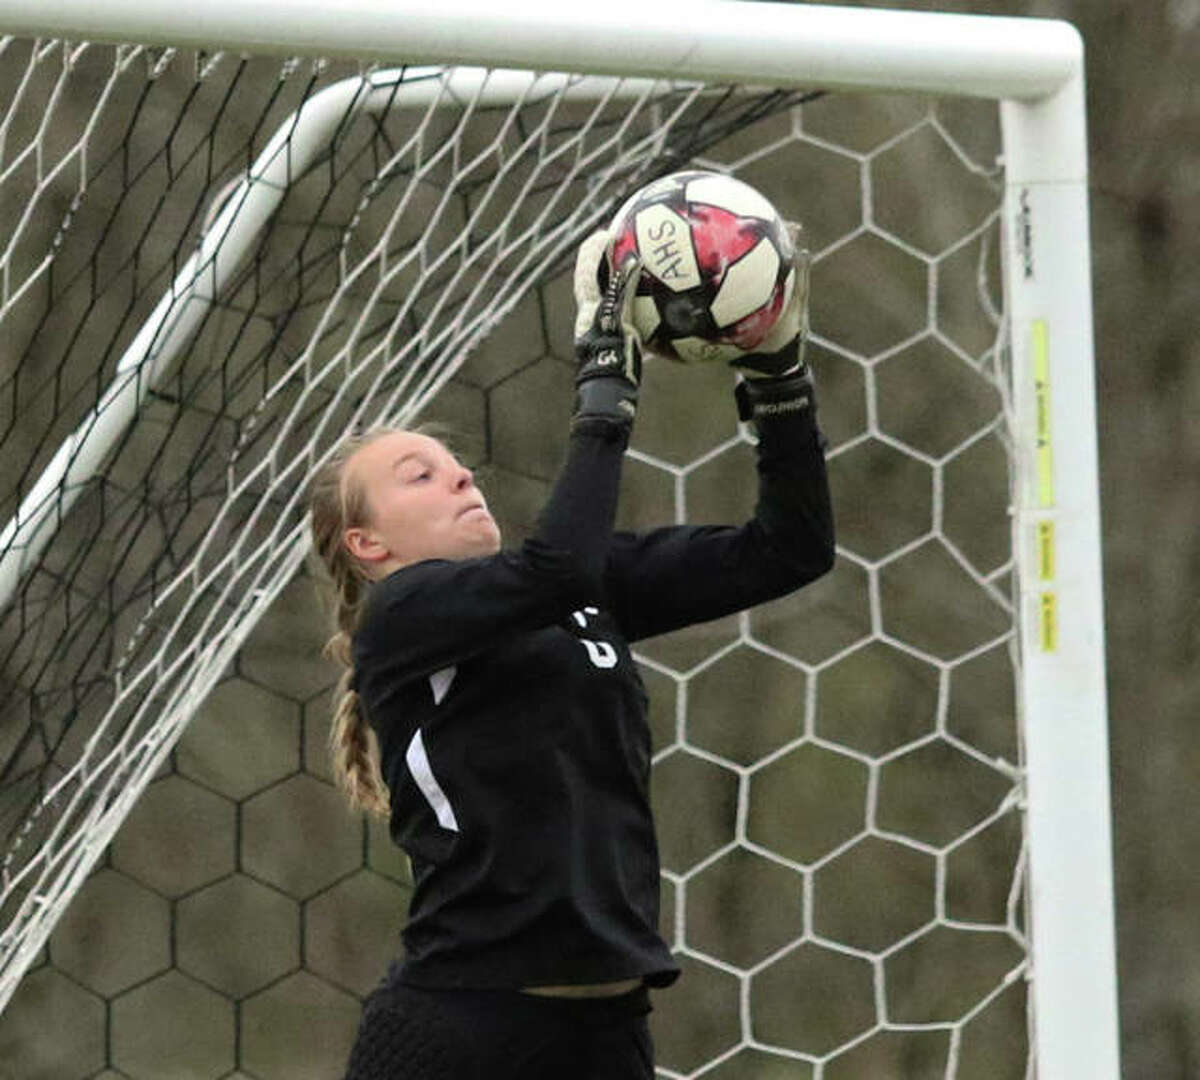 Alton goalie Addison Miller makes a save during a 2019 game. Miller, now a senior, is one of three senior captains on the AHS team this season. The Redbirds, like all Illinois high school girls soccer teams, are returning this week for the first time since 2019 after the 2020 season was cancelled because of the pandemic.